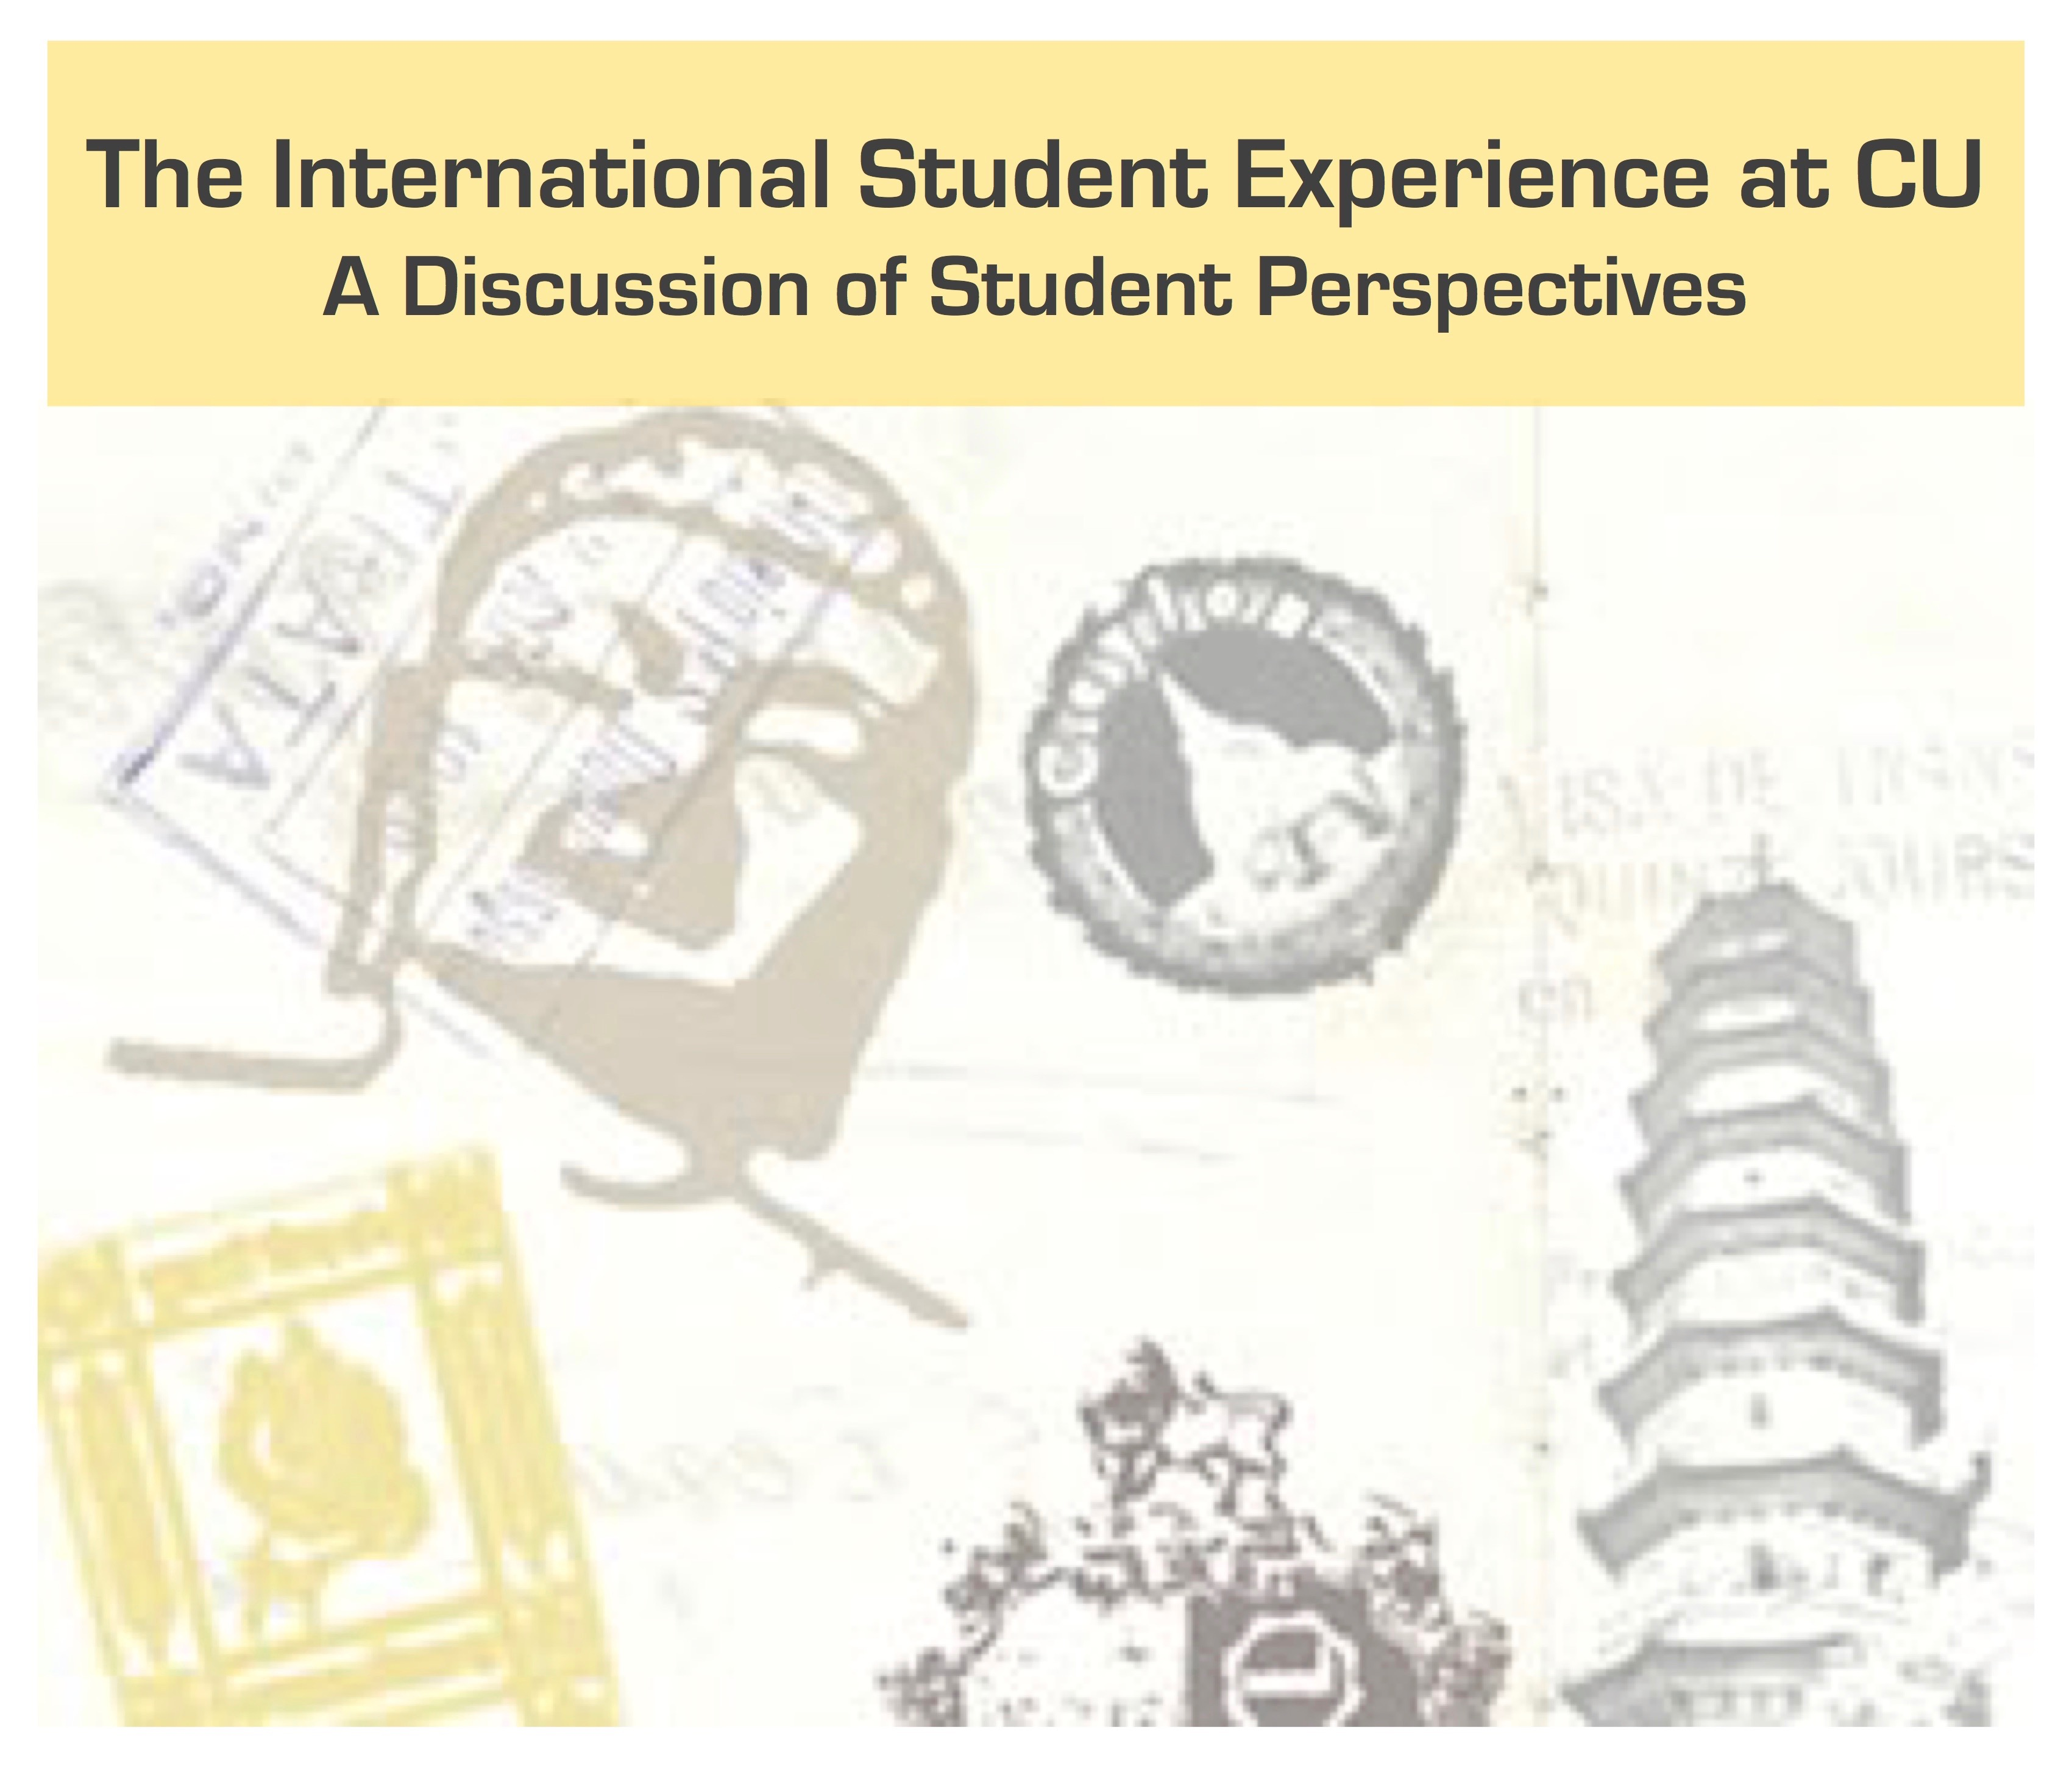 The International Student Experience at CU: A Discussion of Student Perspectives